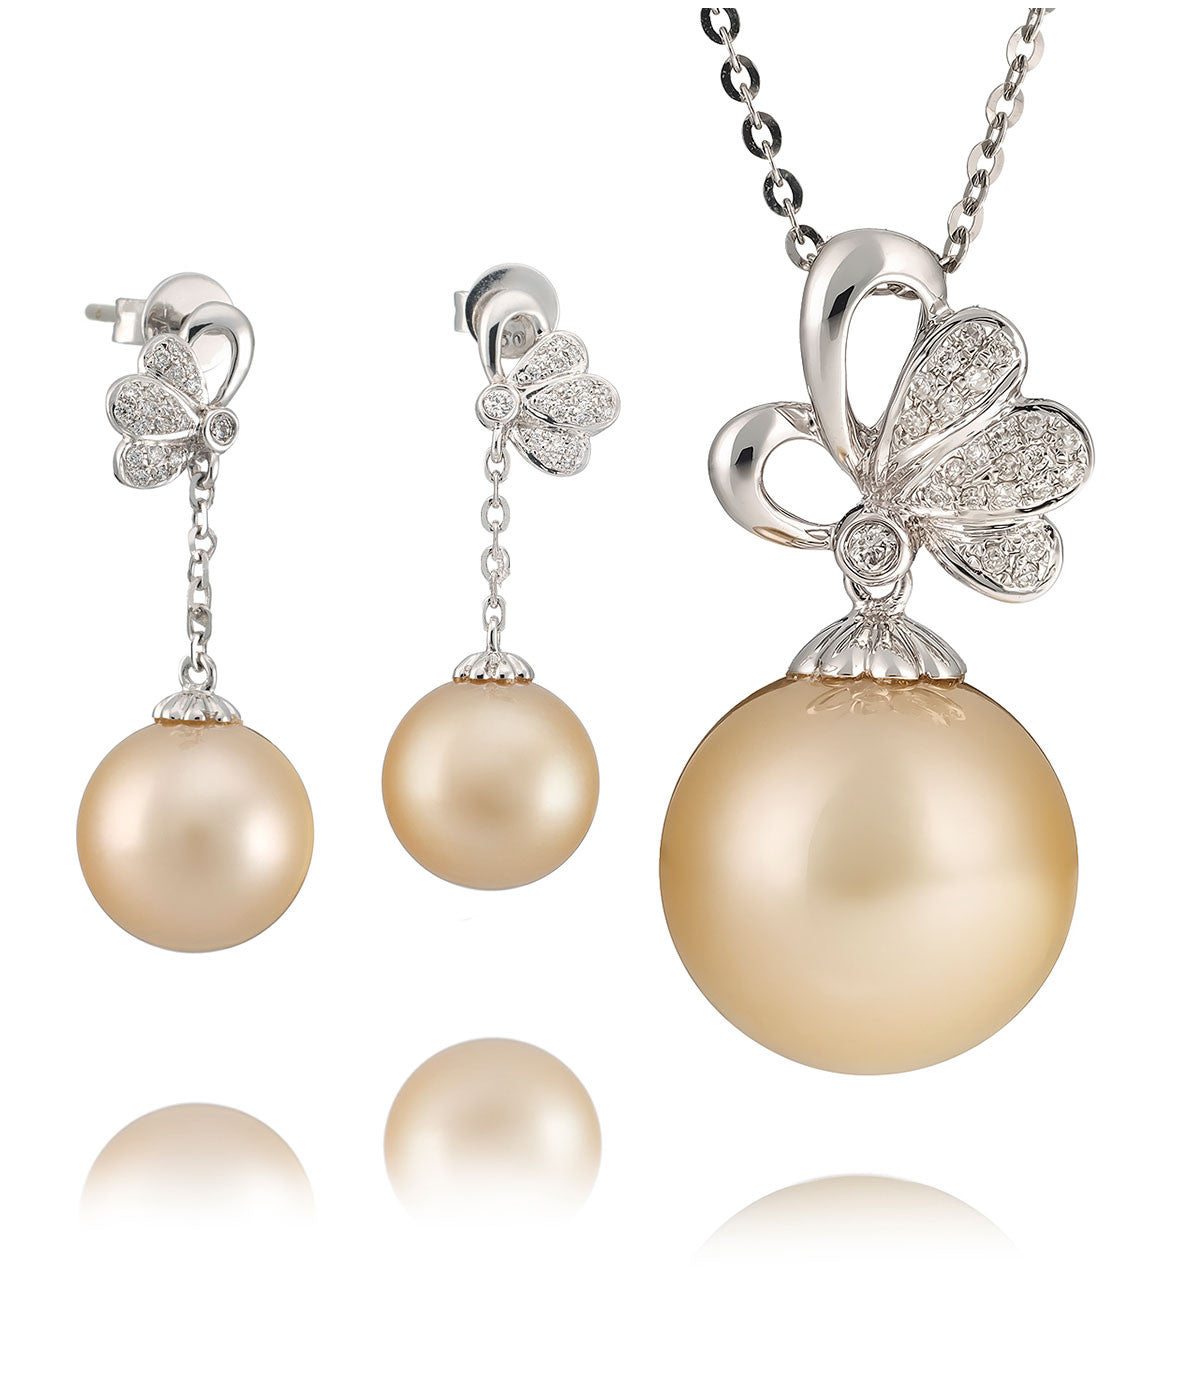 Pearl Jewellery Necklace >> Luxury Golden South Sea Pearl Necklace Set - PEARL-LANG®